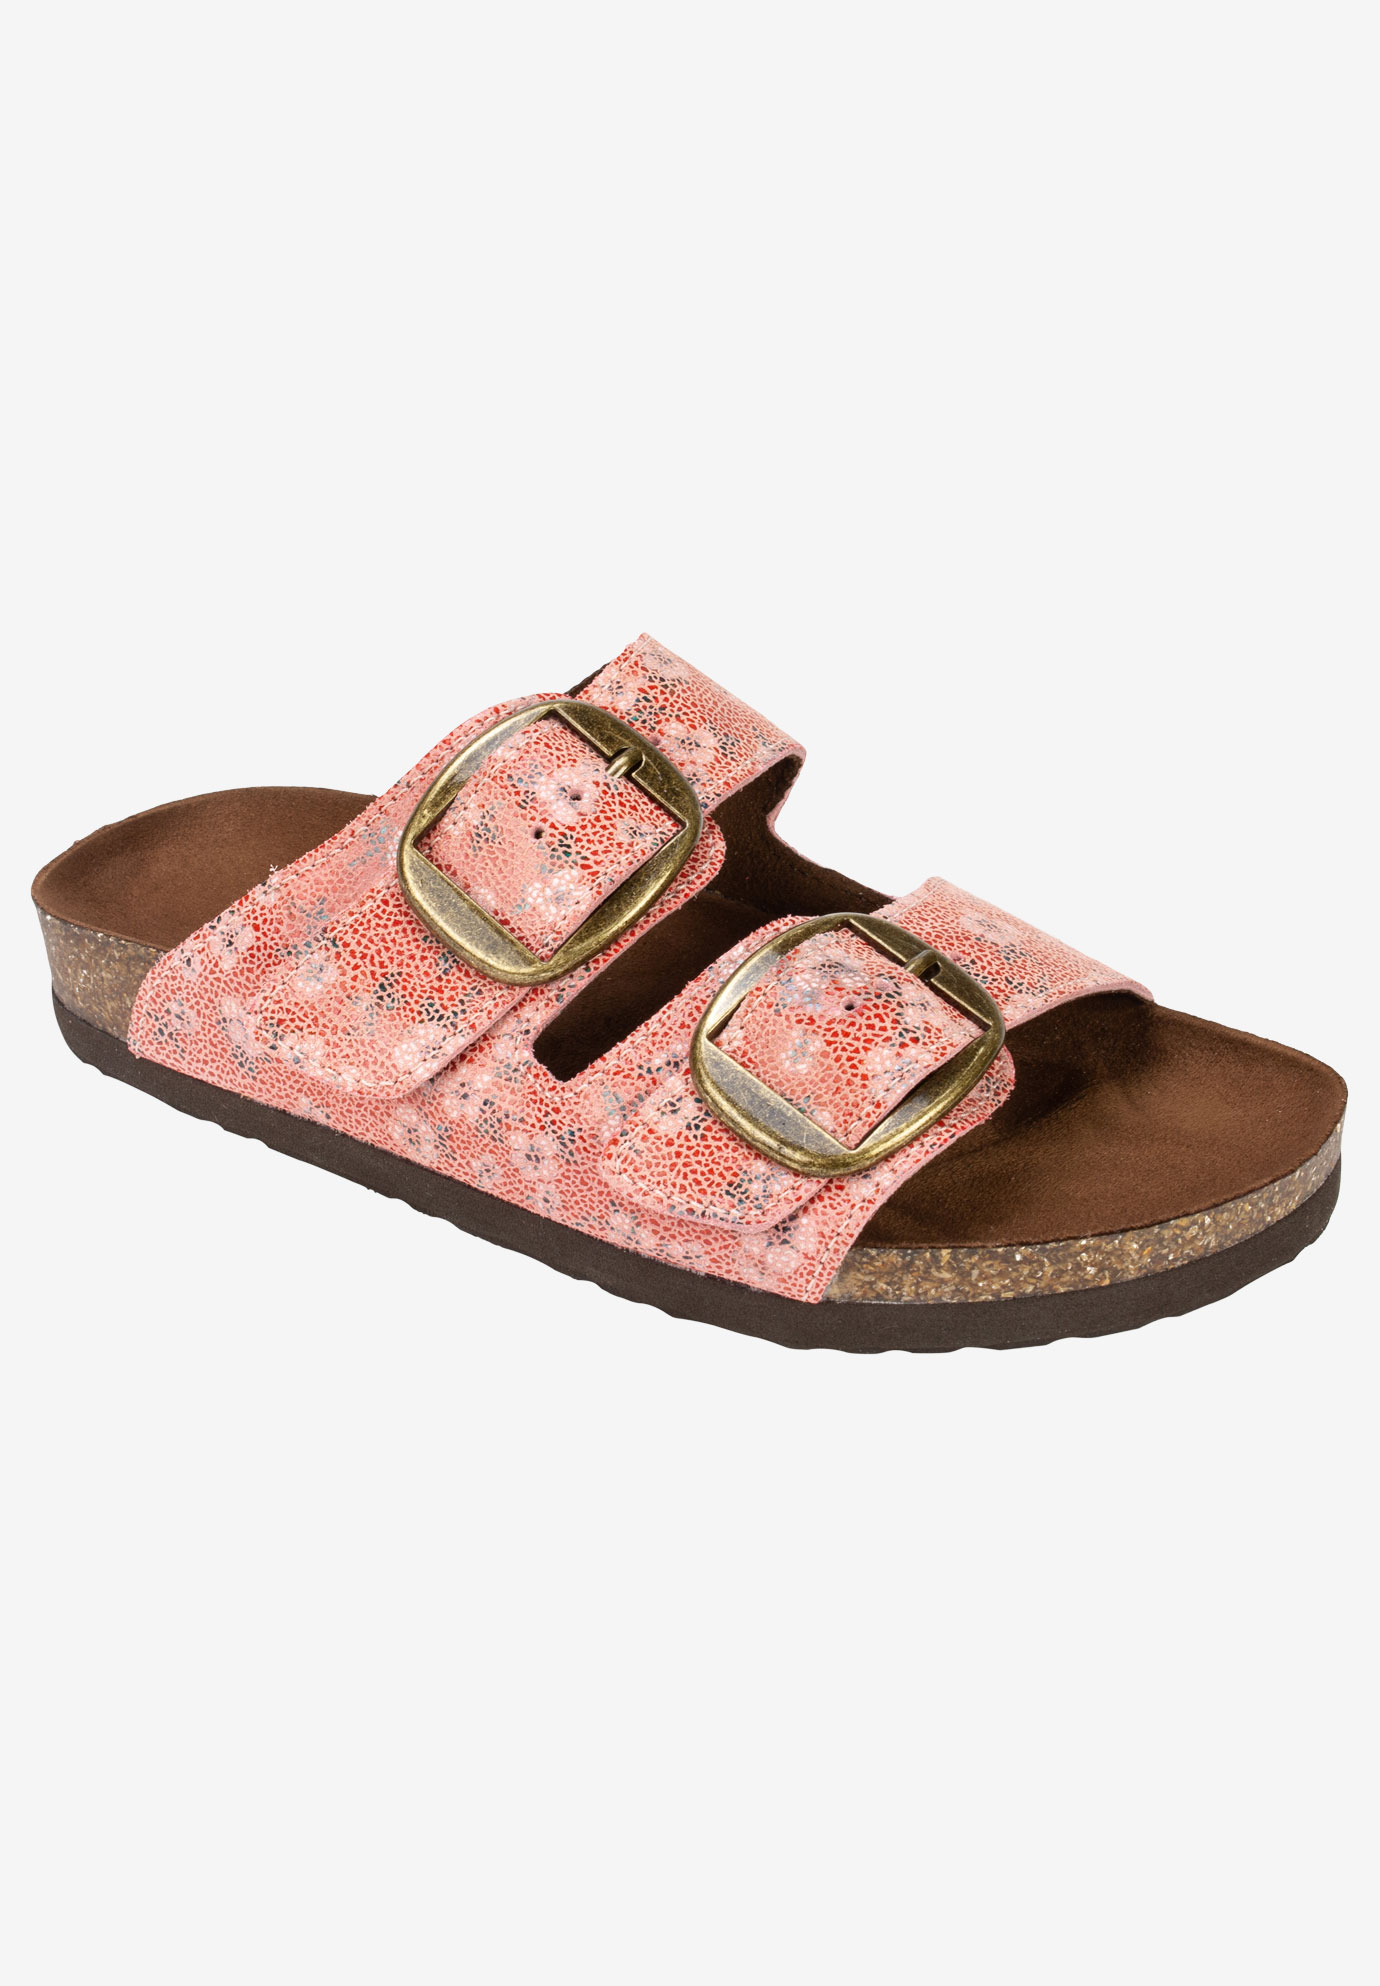 Harlow Sandal by White Mountain,